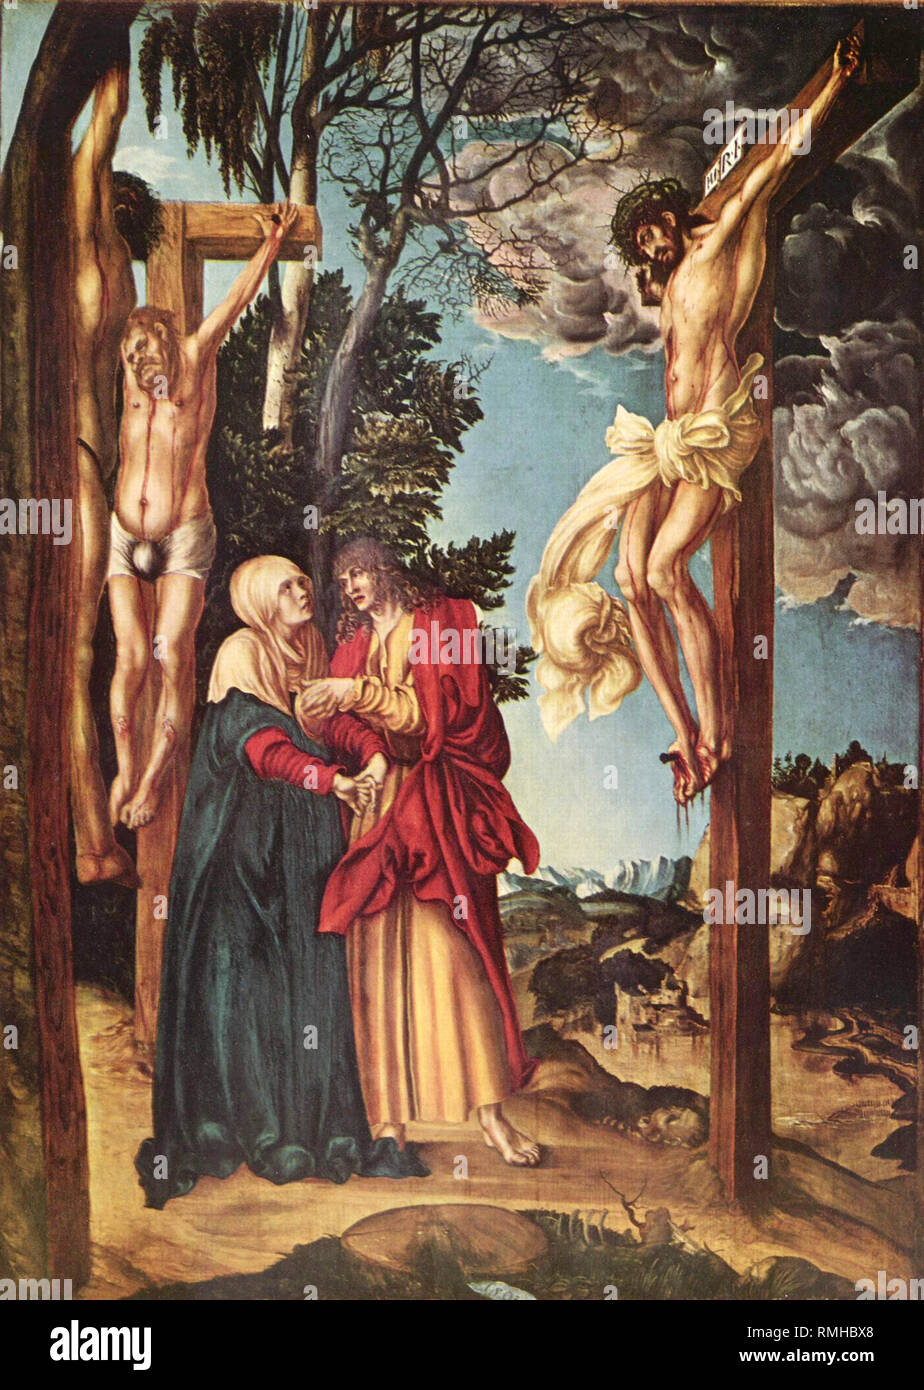 Crucifixion of Christ by Lucas Cranach the Elder, 1503 - Stock Image